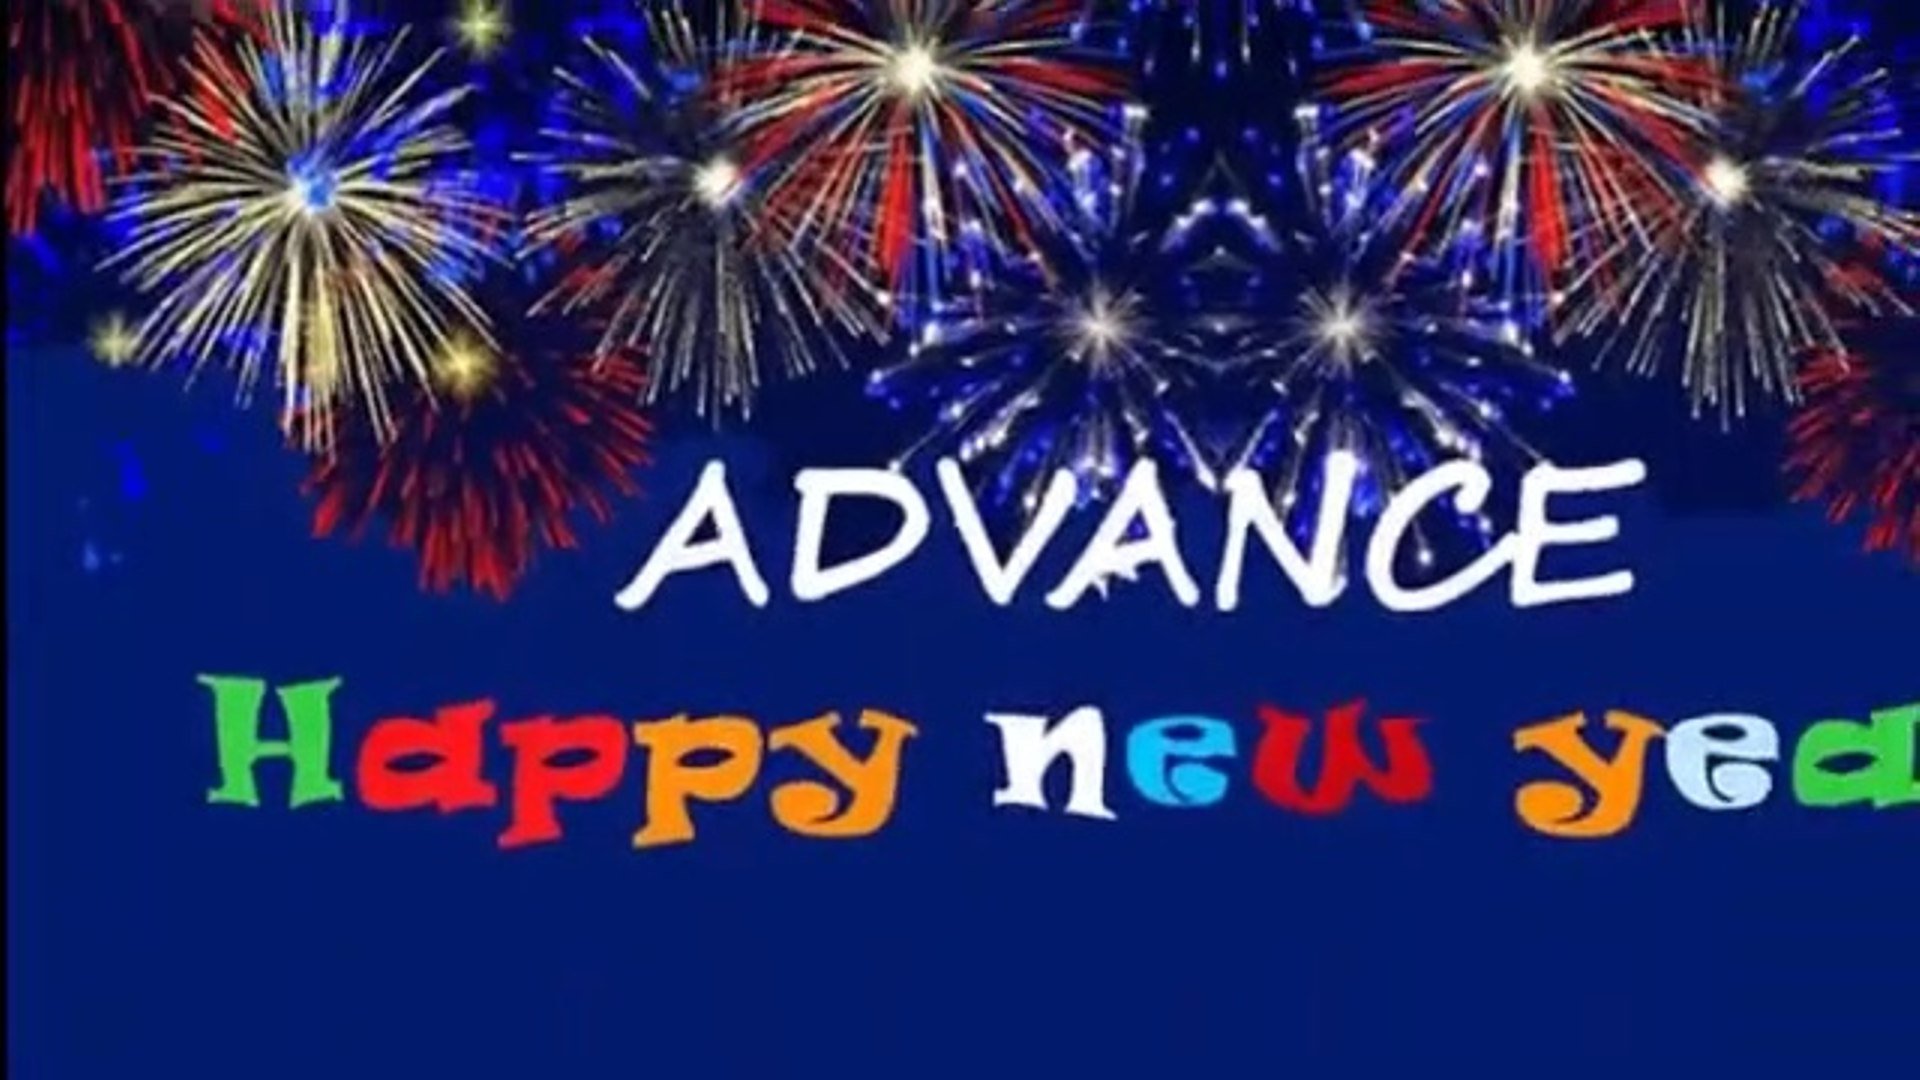 Advance Happy New Year 2020 Wallpapers